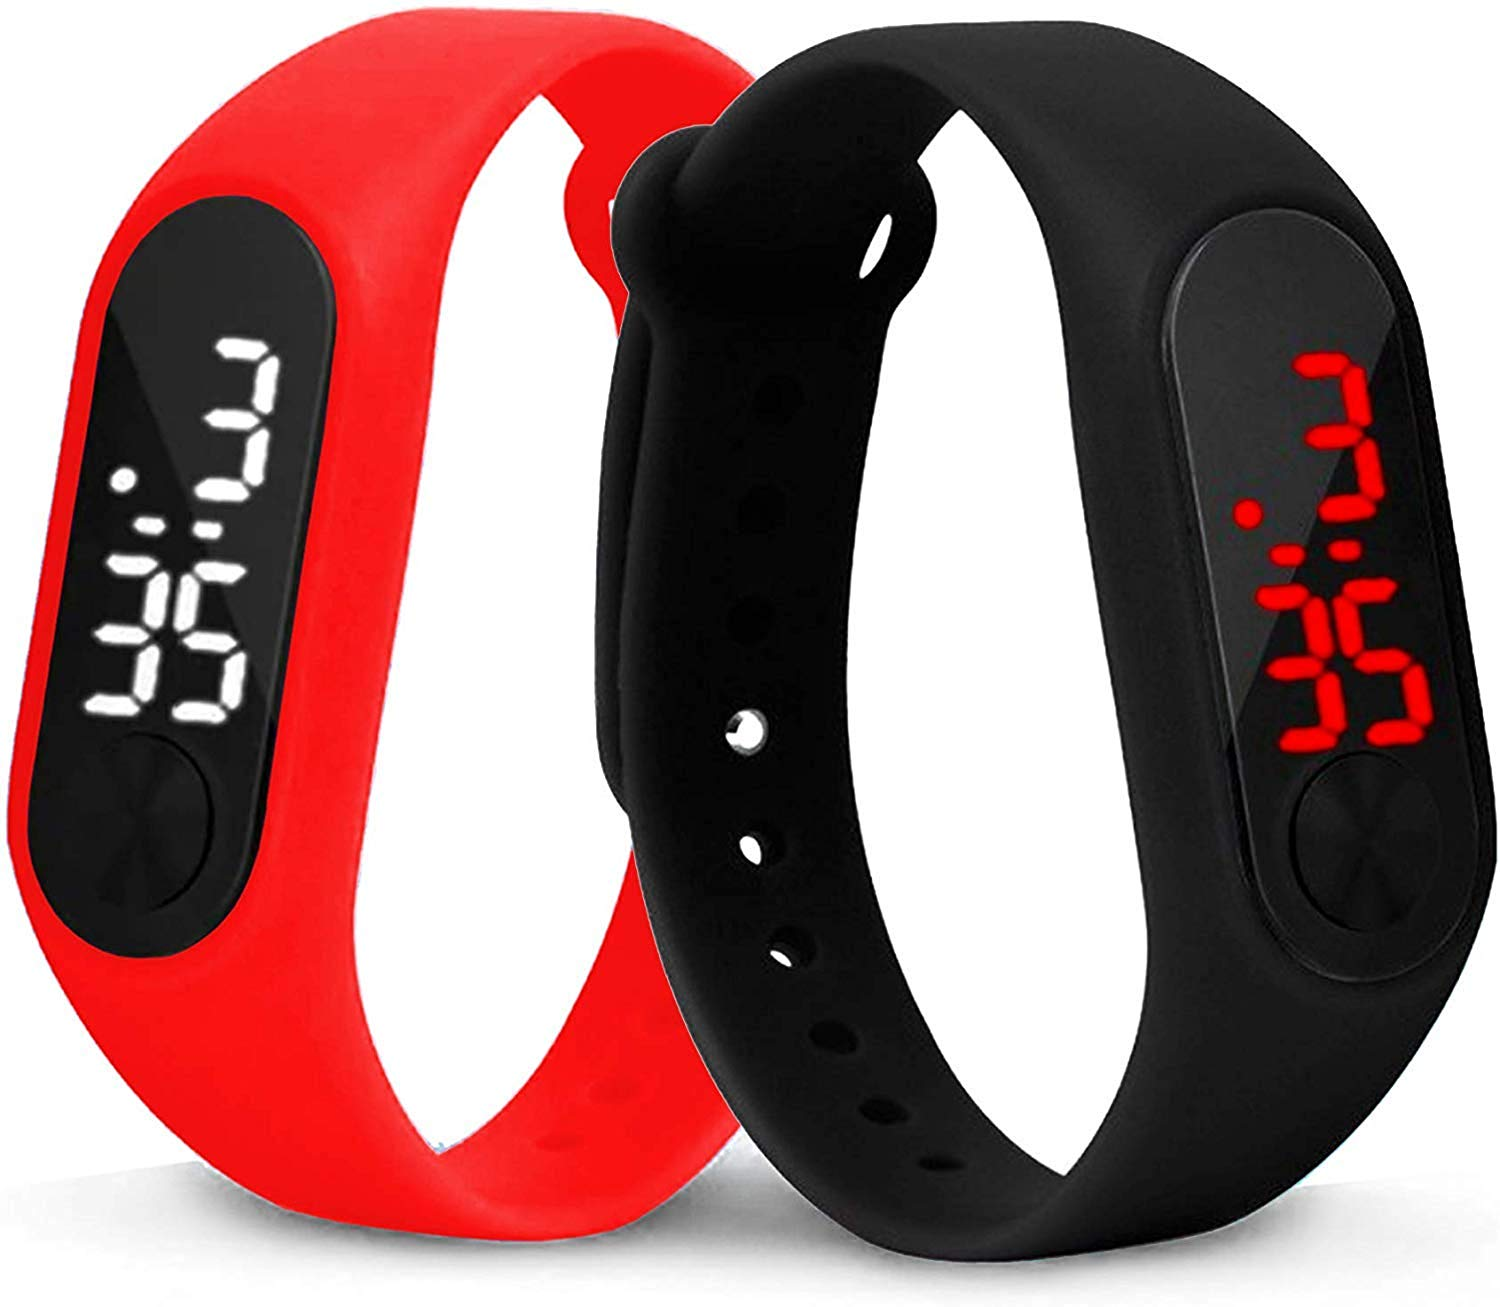 Red & Black Slim Digital Led Bracelet Band Watch for Boys and Girls Combo Set of 2-DY64